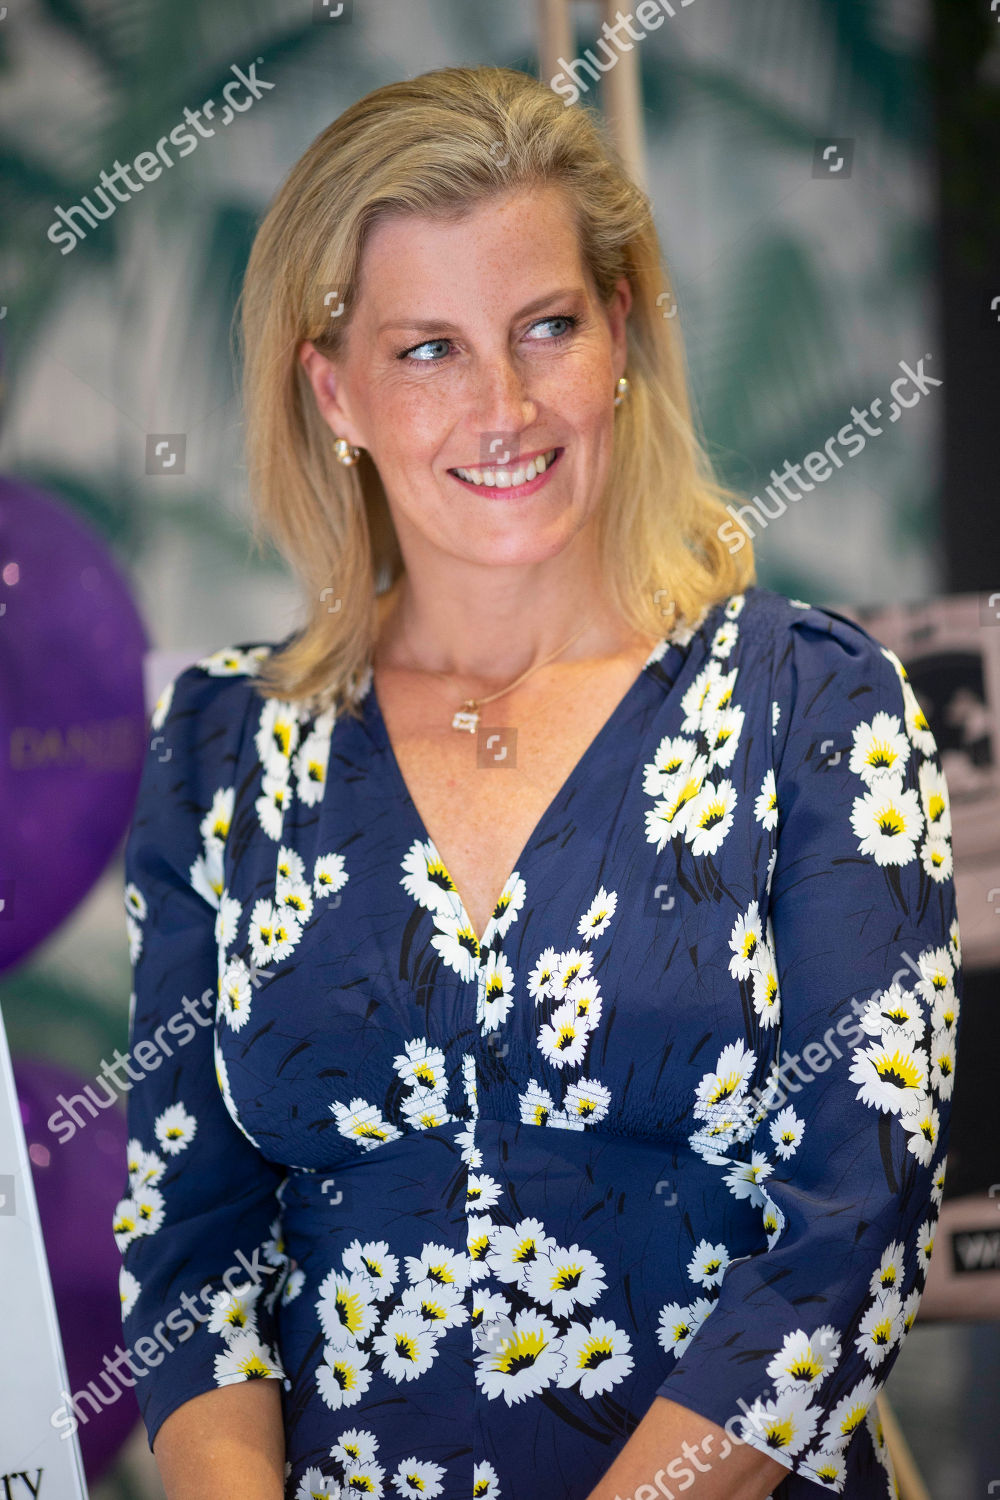 sophie-countess-of-wessex-visits-the-daniel-department-store-windsor-uk-shutterstock-editorial-9885078j.jpg